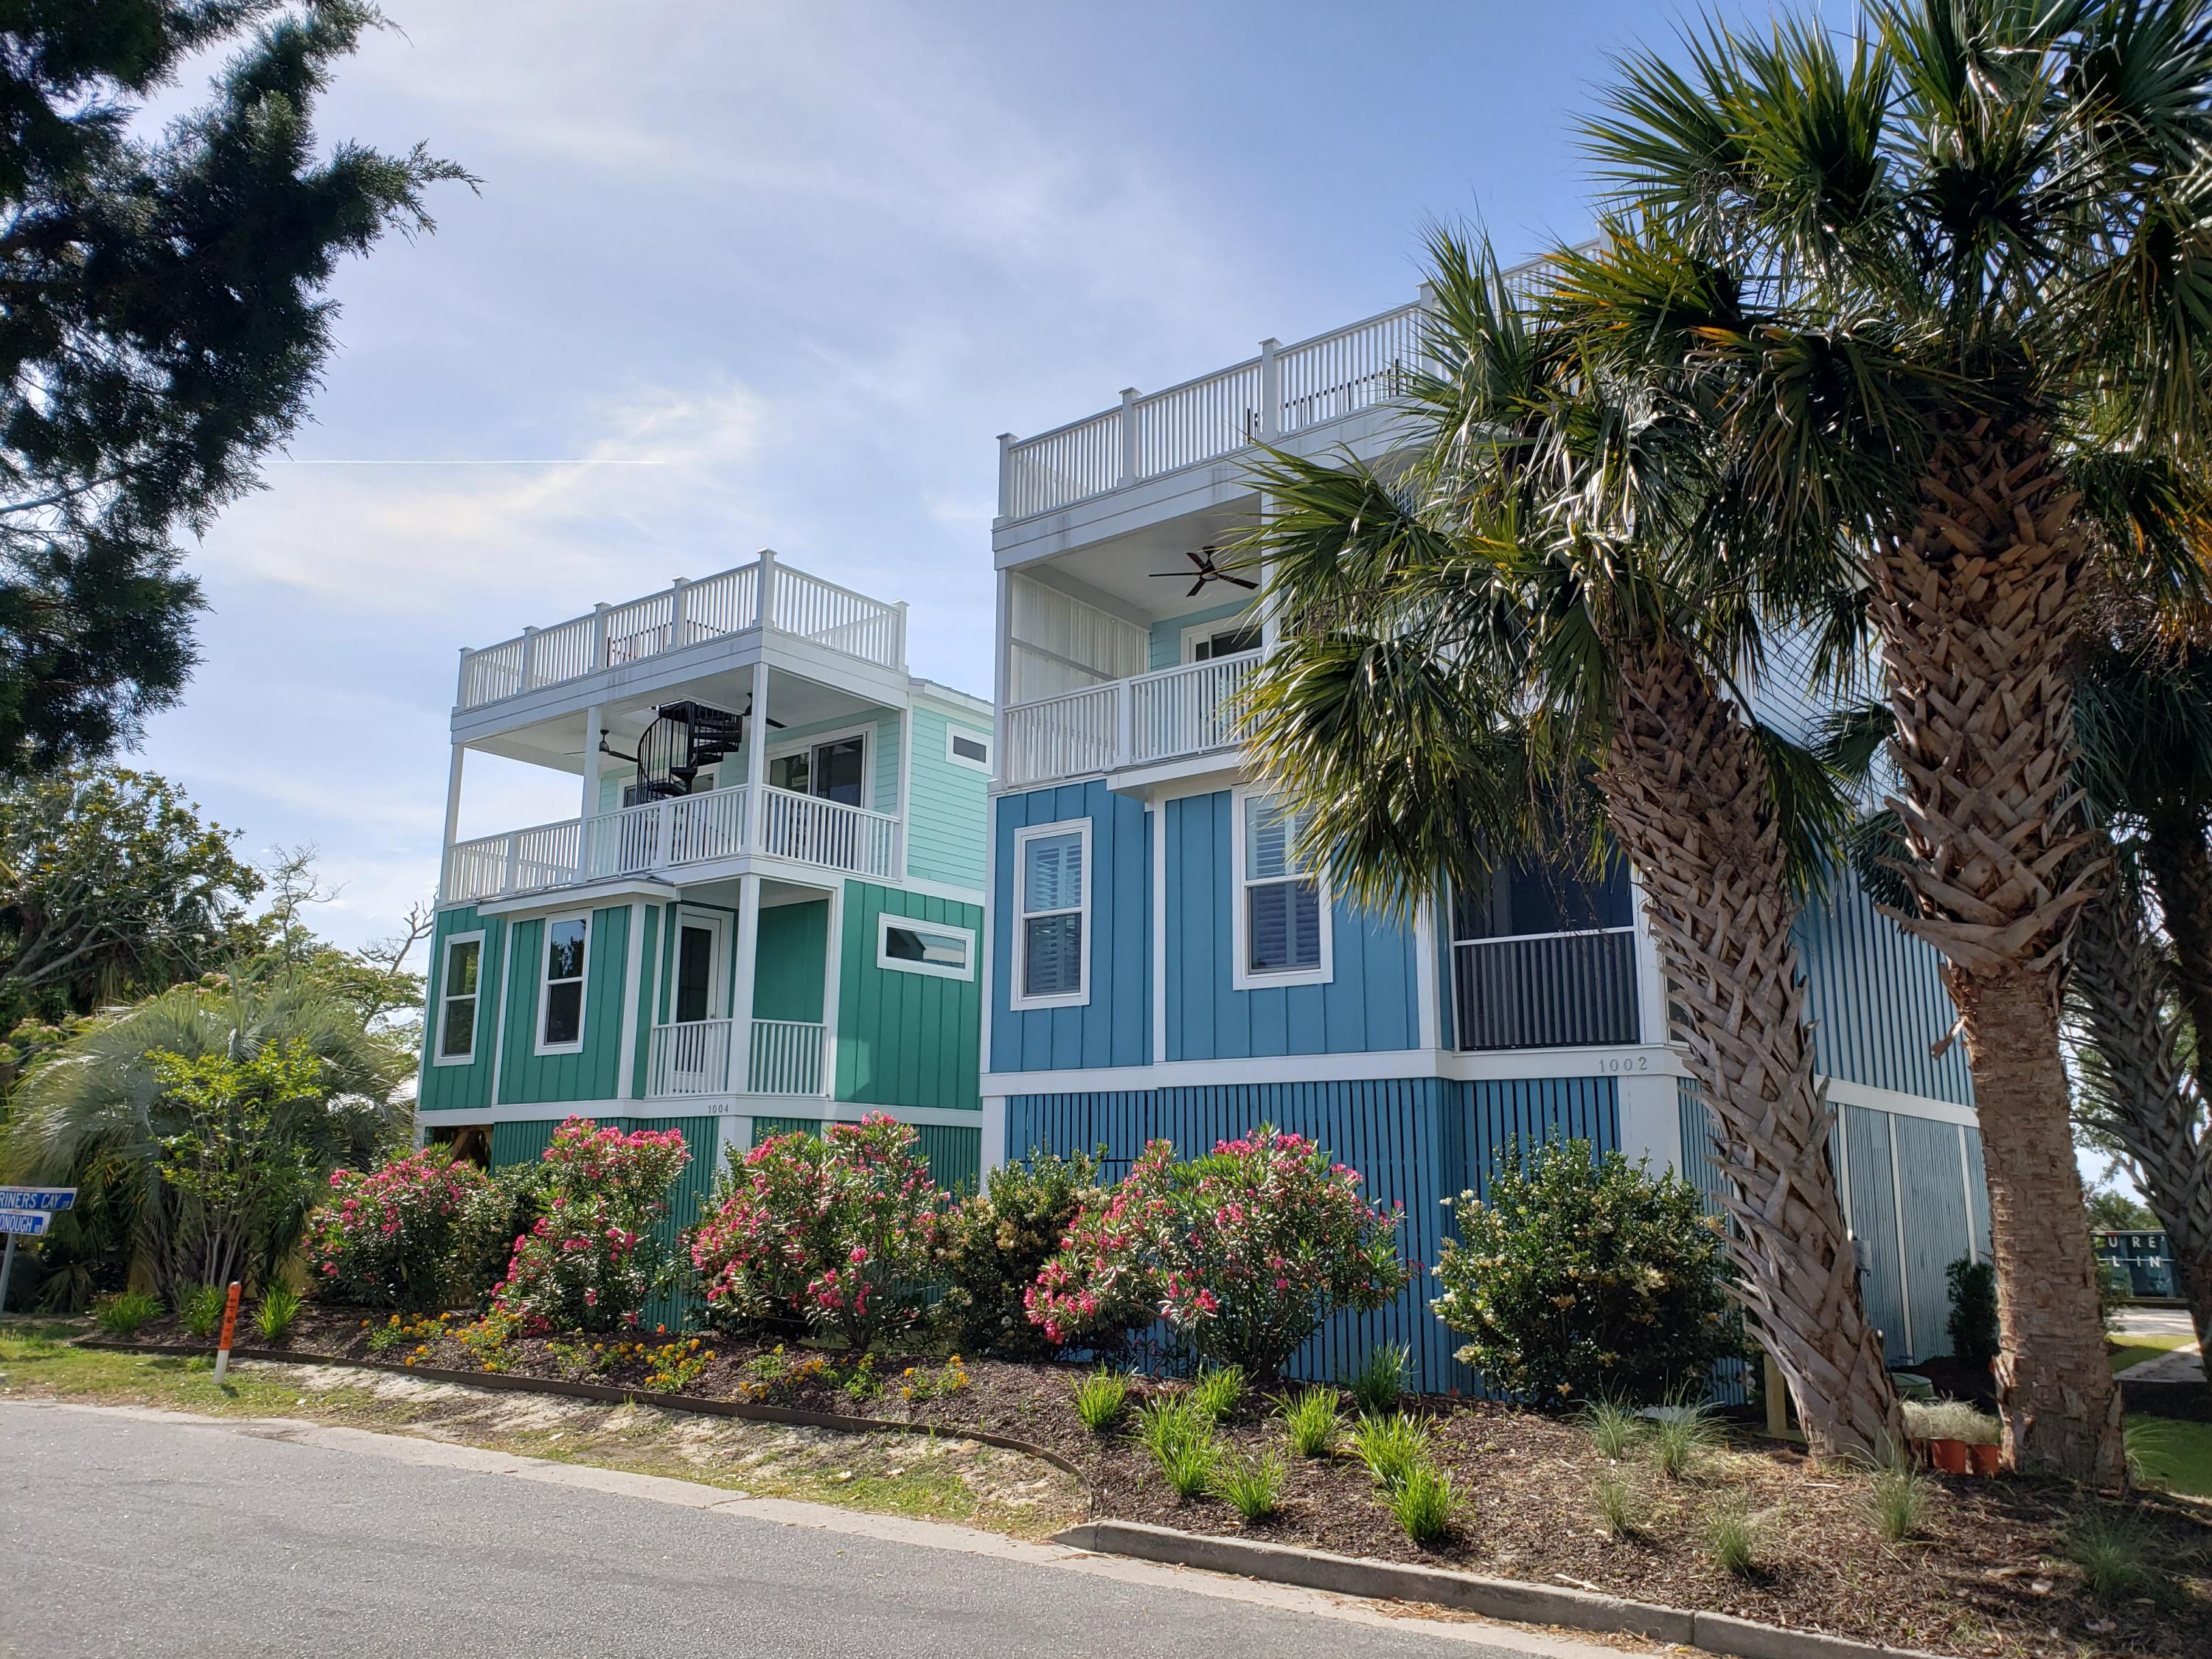 Mariners Cay Homes For Sale - 1008 Mariners Cay, Folly Beach, SC - 14